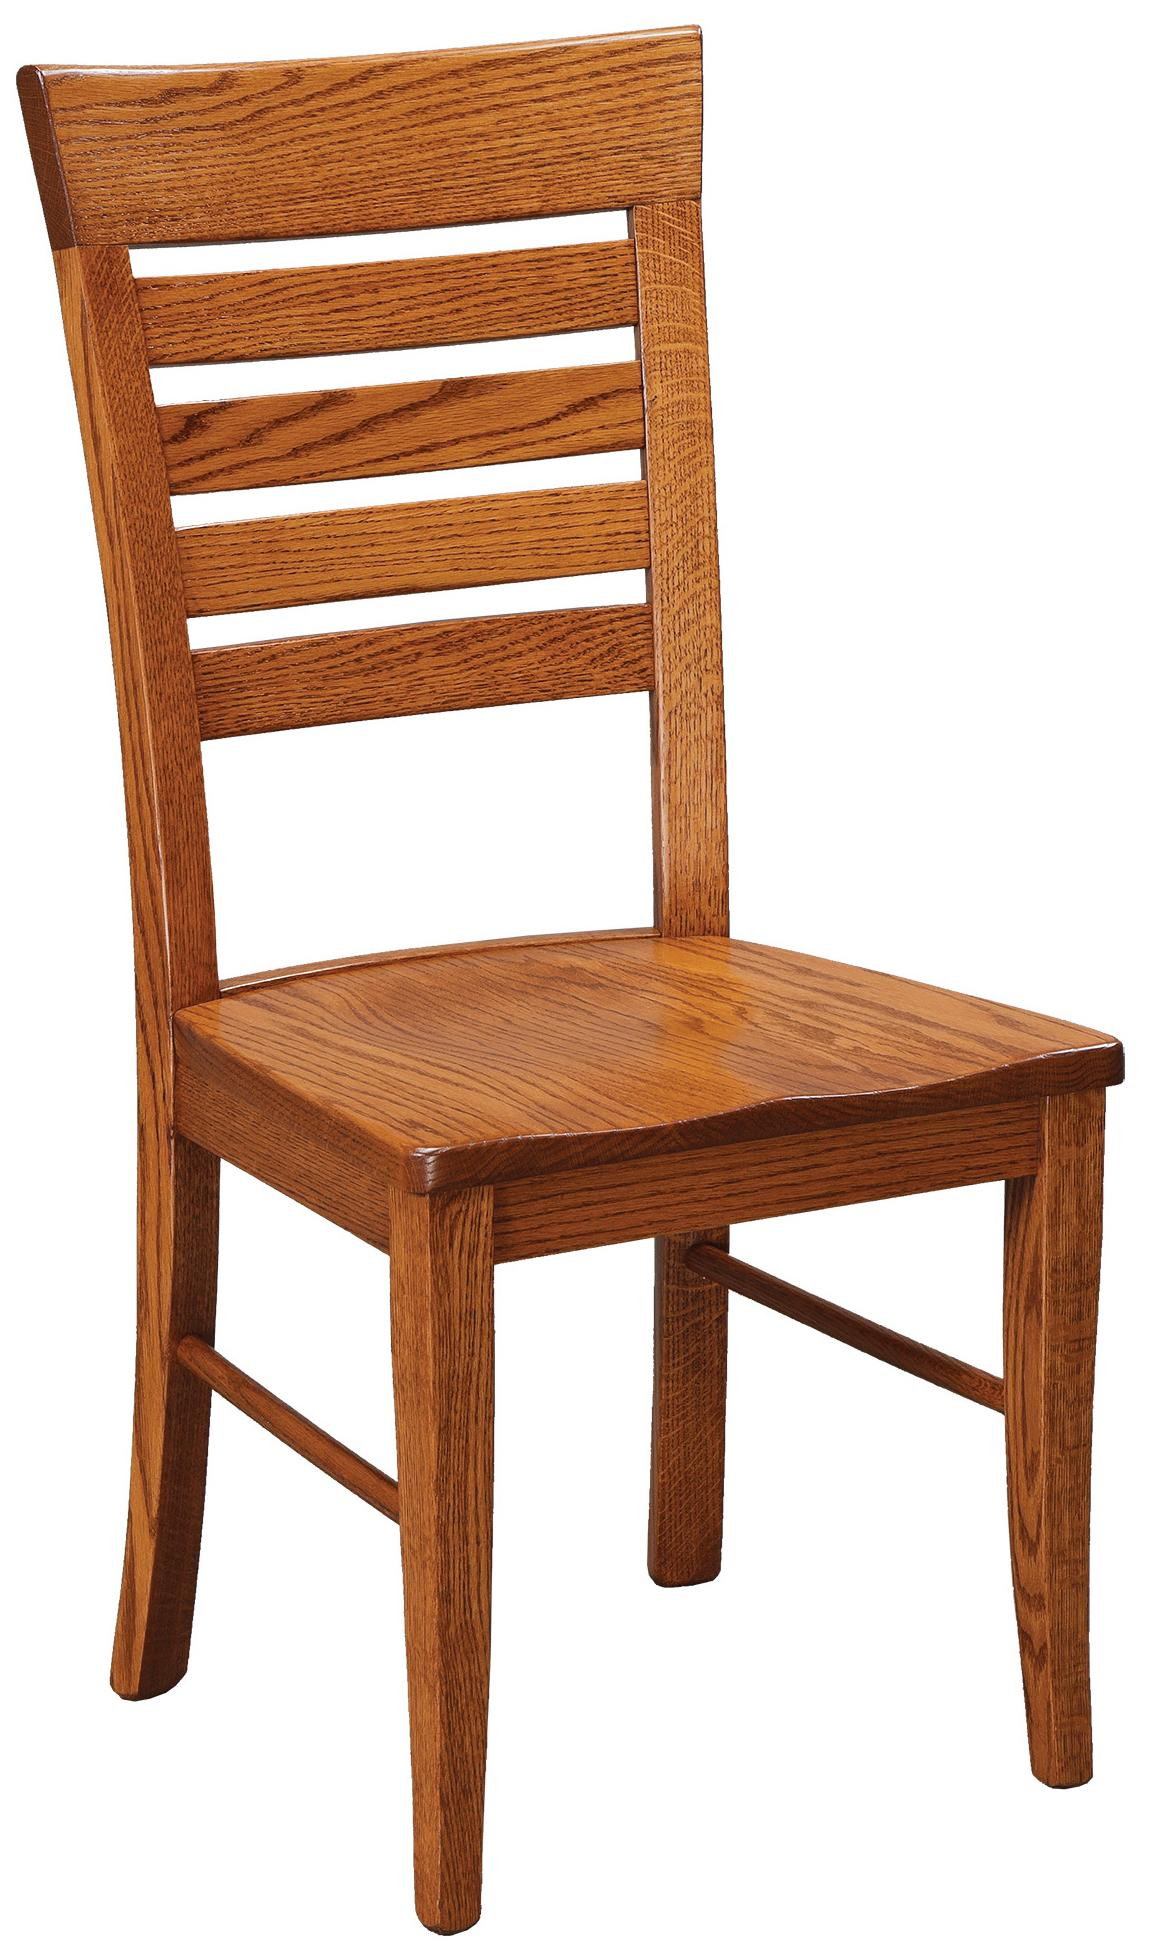 Chairs and Barstools Metro Ladder Side Chair by Daniel's Amish at Lucas Furniture & Mattress